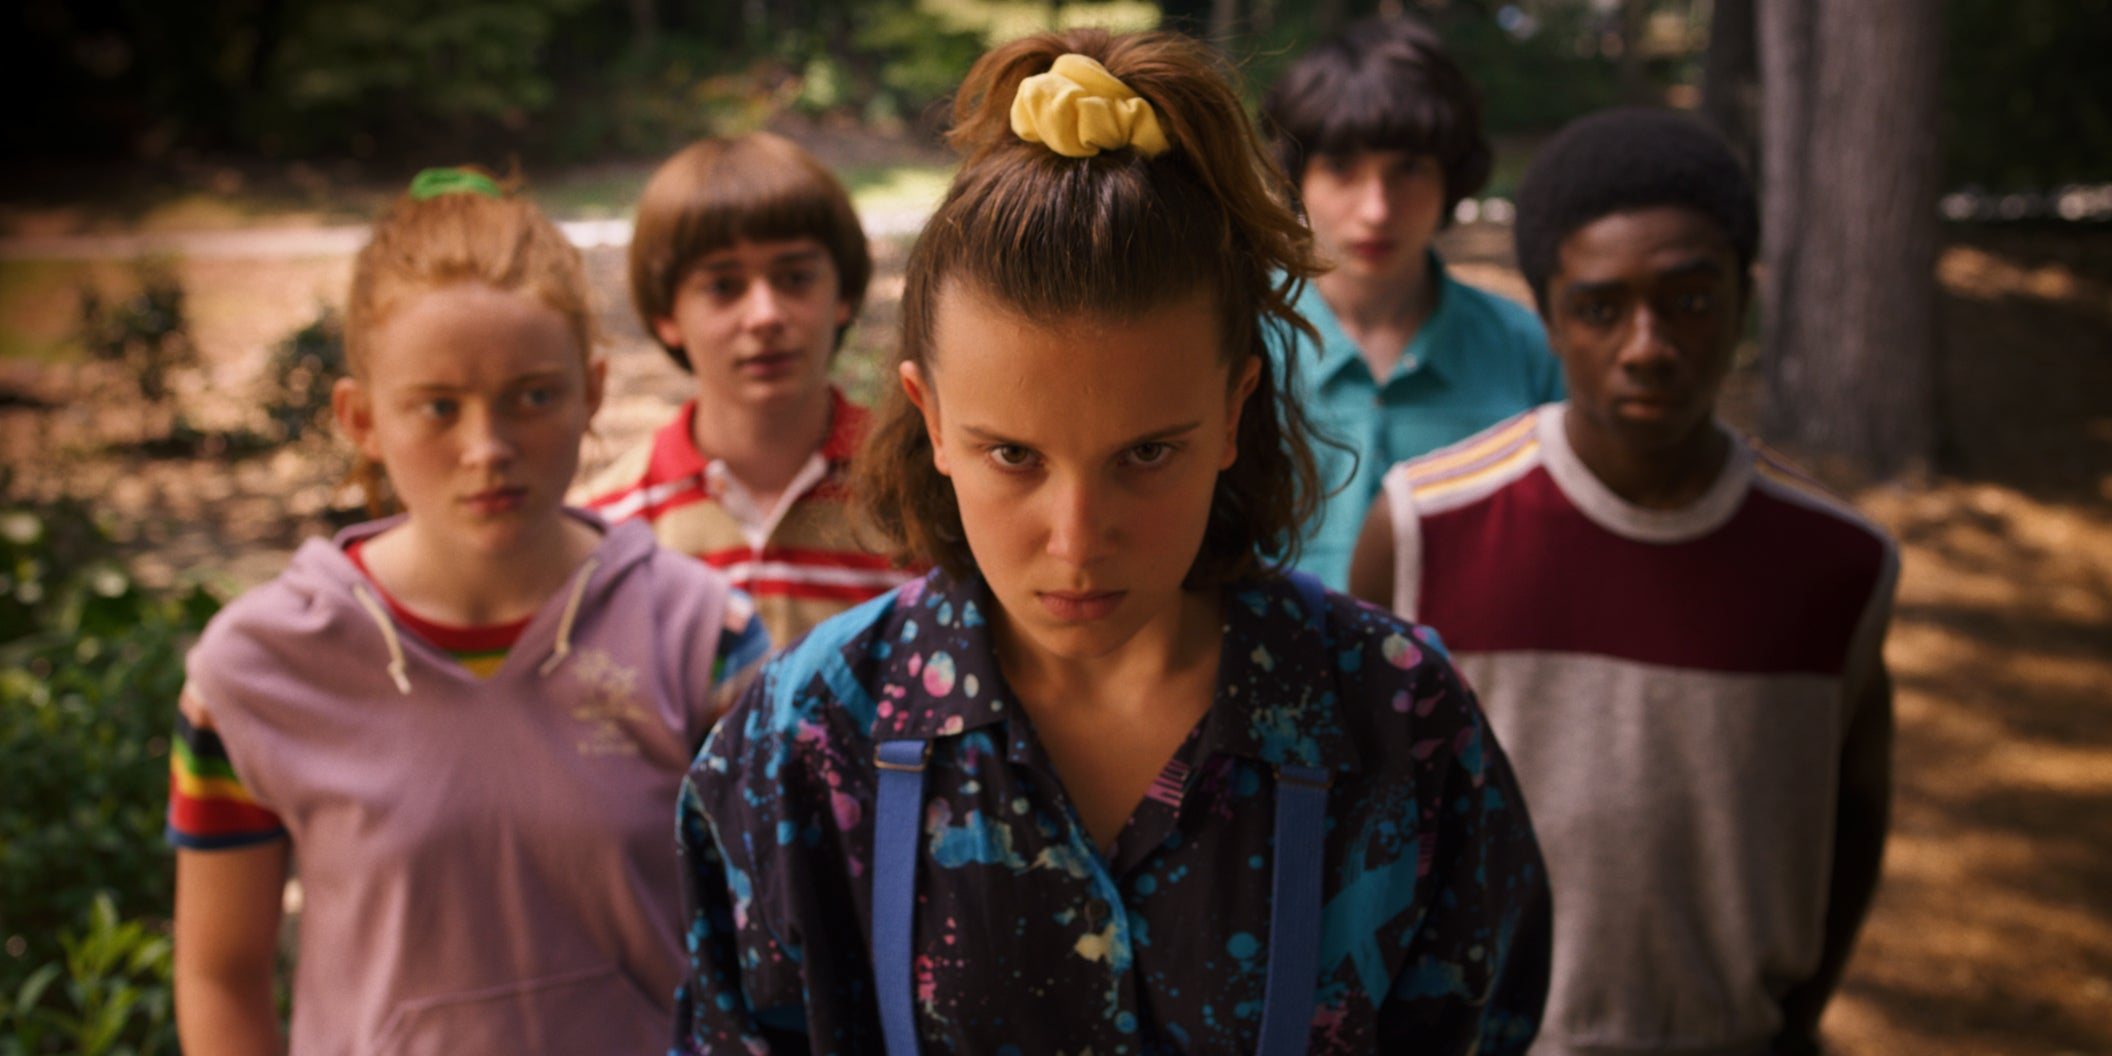 A determined-looking teen girl, with four other teens looking on.